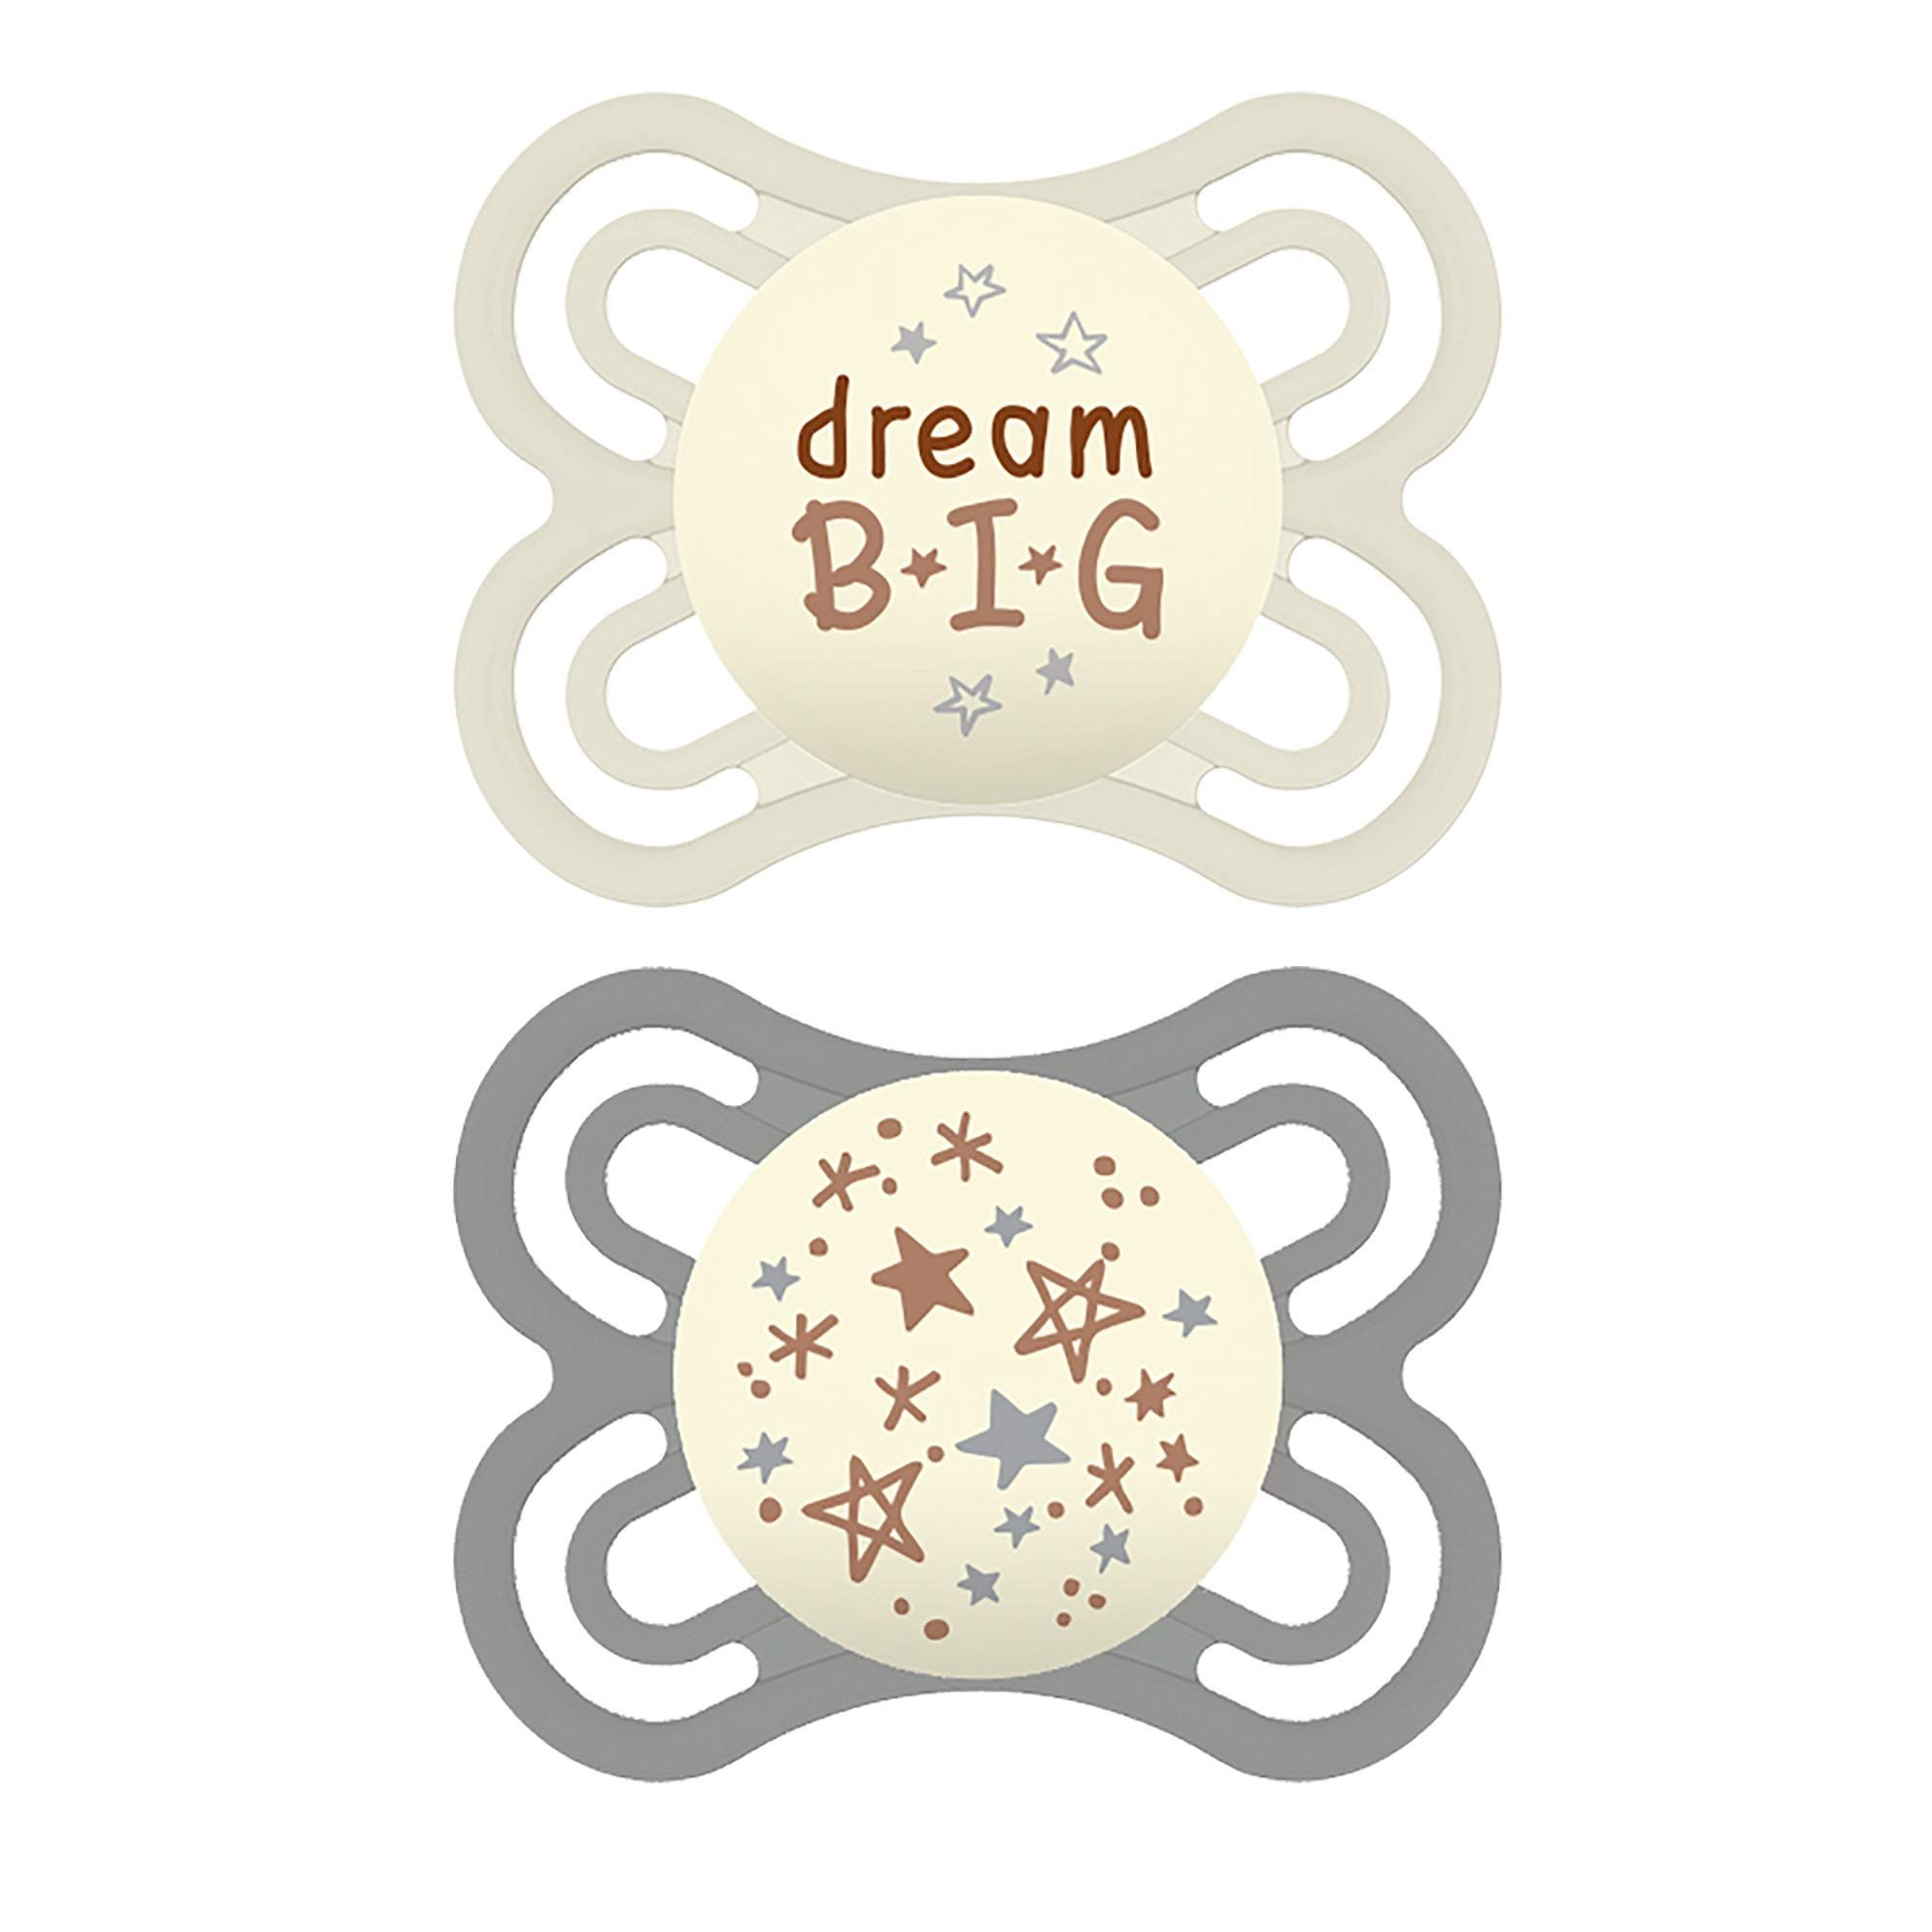 MAM Perfect Night Pacifiers, Glow in the Dark Pacifiers (2 pack) MAM Pacifiers 0-6 Months, Best Pacifier for Breastfed Babies, Unisex Baby Pacifier, Designs May Vary